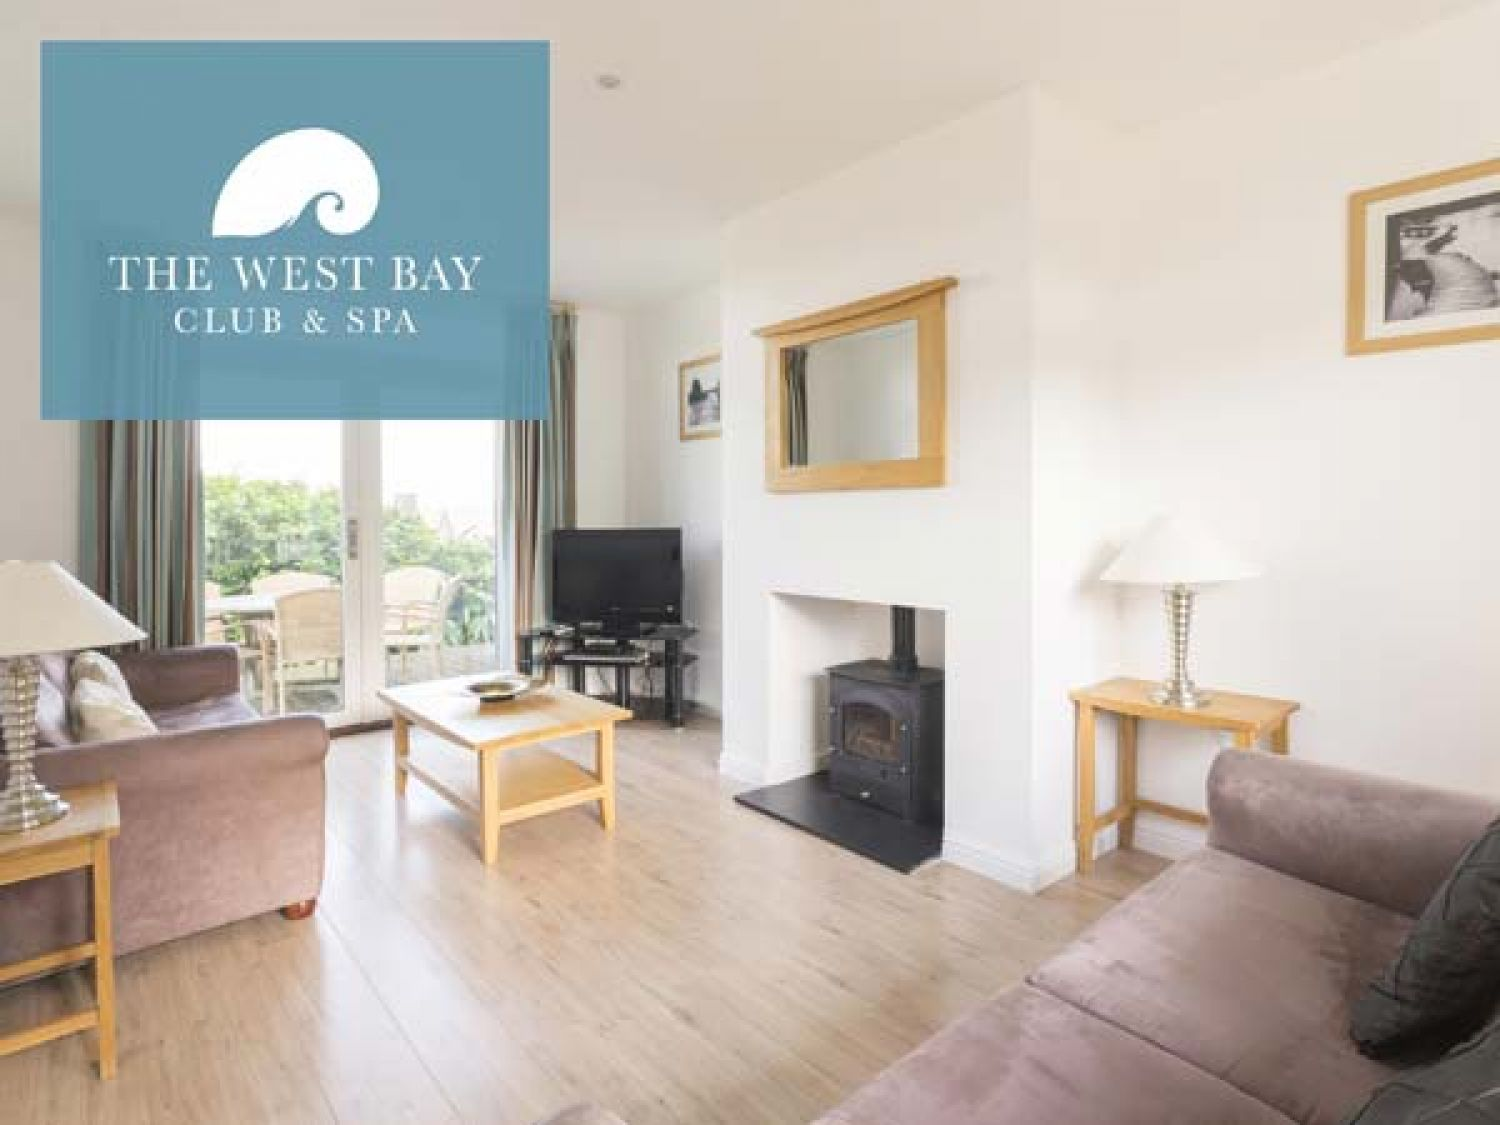 Three bedroom house for 6 at The West Bay Club & Spa - Isle of Wight & Hampshire - 943924 - photo 1